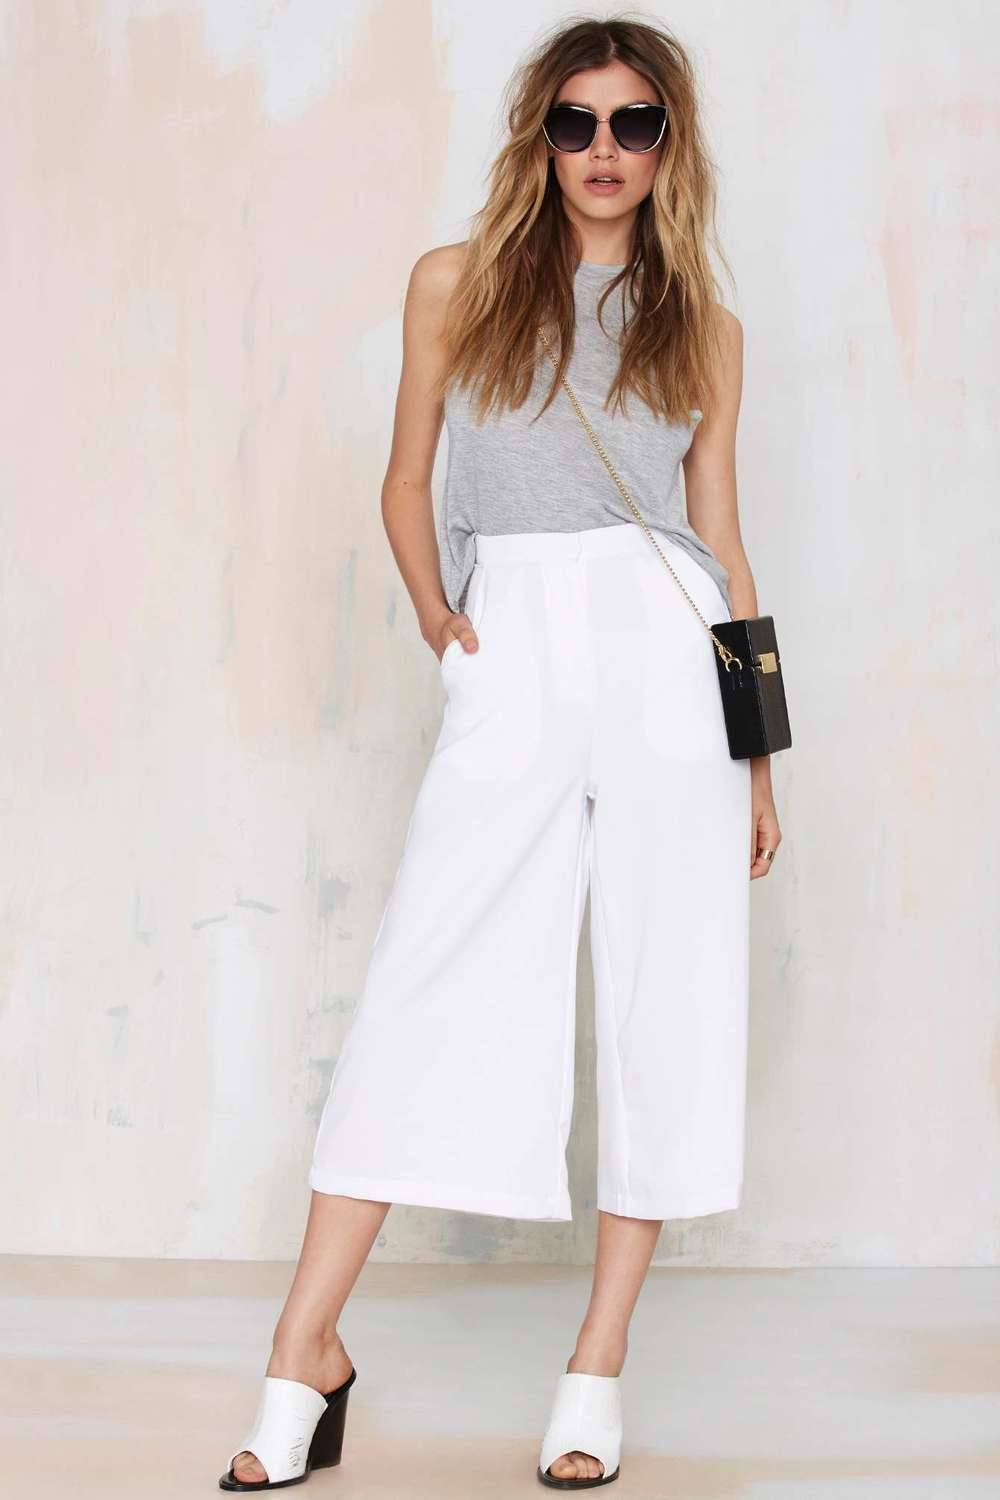 Last Call Culotte Shorts - White $58.00